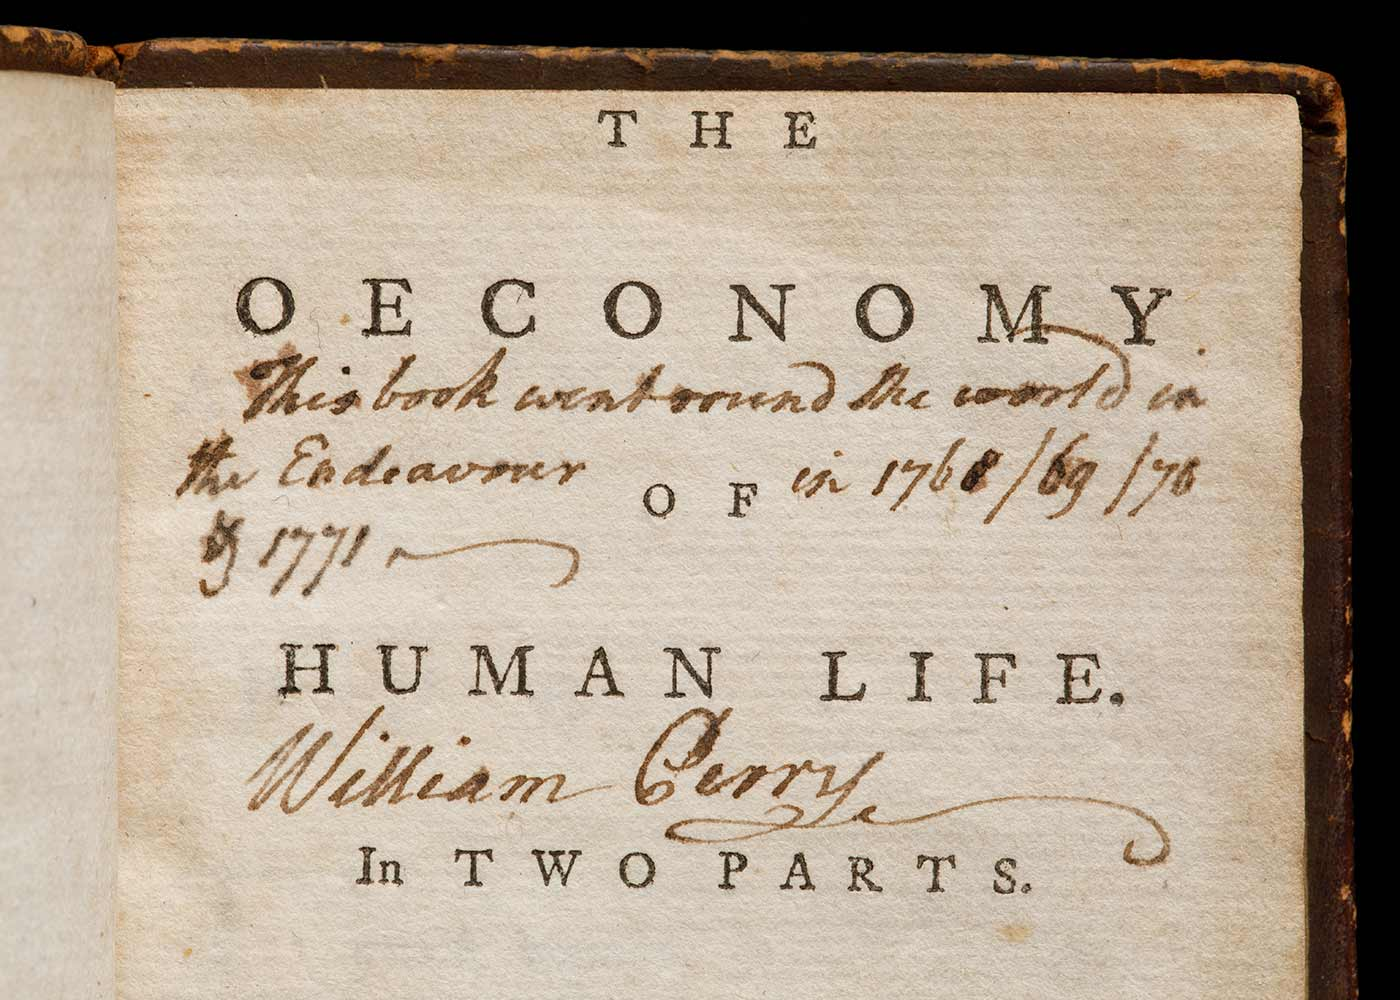 Close up view of a book featuring the title 'The Oeconomy of Human Life' on the title page. The title-page has the text [handwritten by William Perry] in black ink that reads 'This book went round the World on the Endeavour in 1768 / 69 / 70 & 1771', with Perry's signature underneath. - click to view larger image